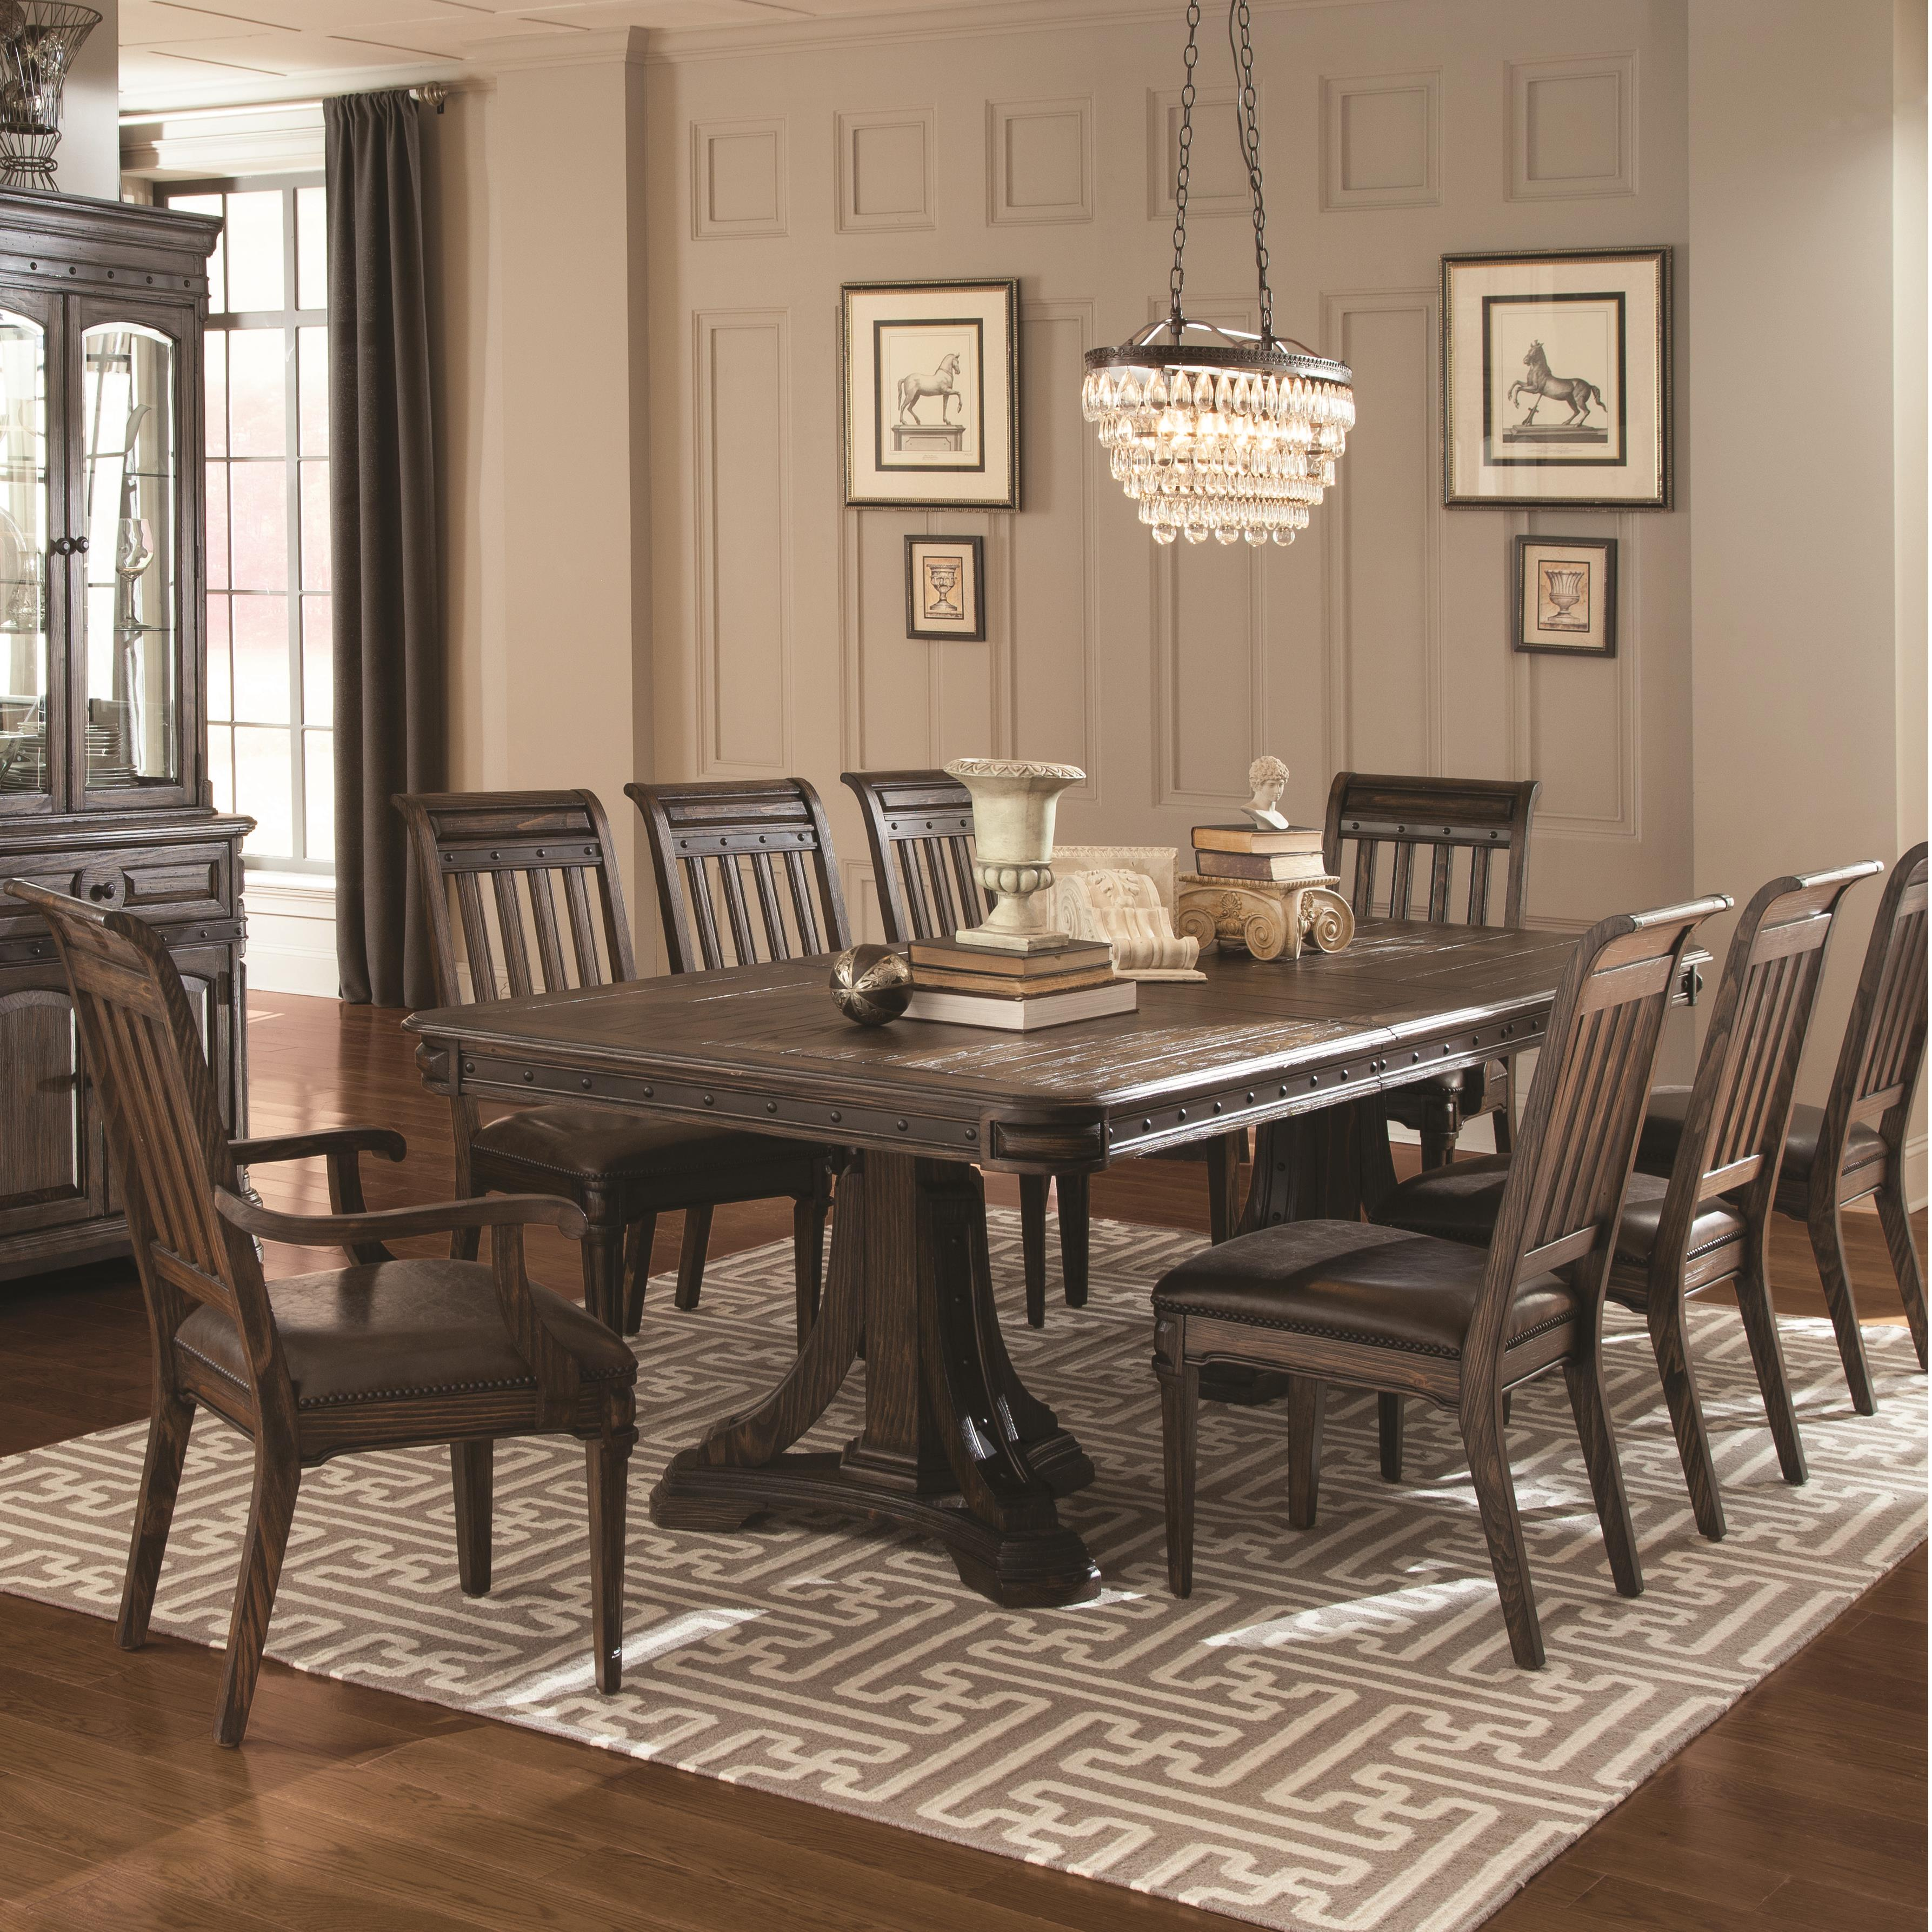 small circle square seater set apr dining best height chairs sets table simple pot and ultra incredible shop gorgeous discount for deals inspirations bar room great big amazing solid the designing flower smartness contemporary ideas round images